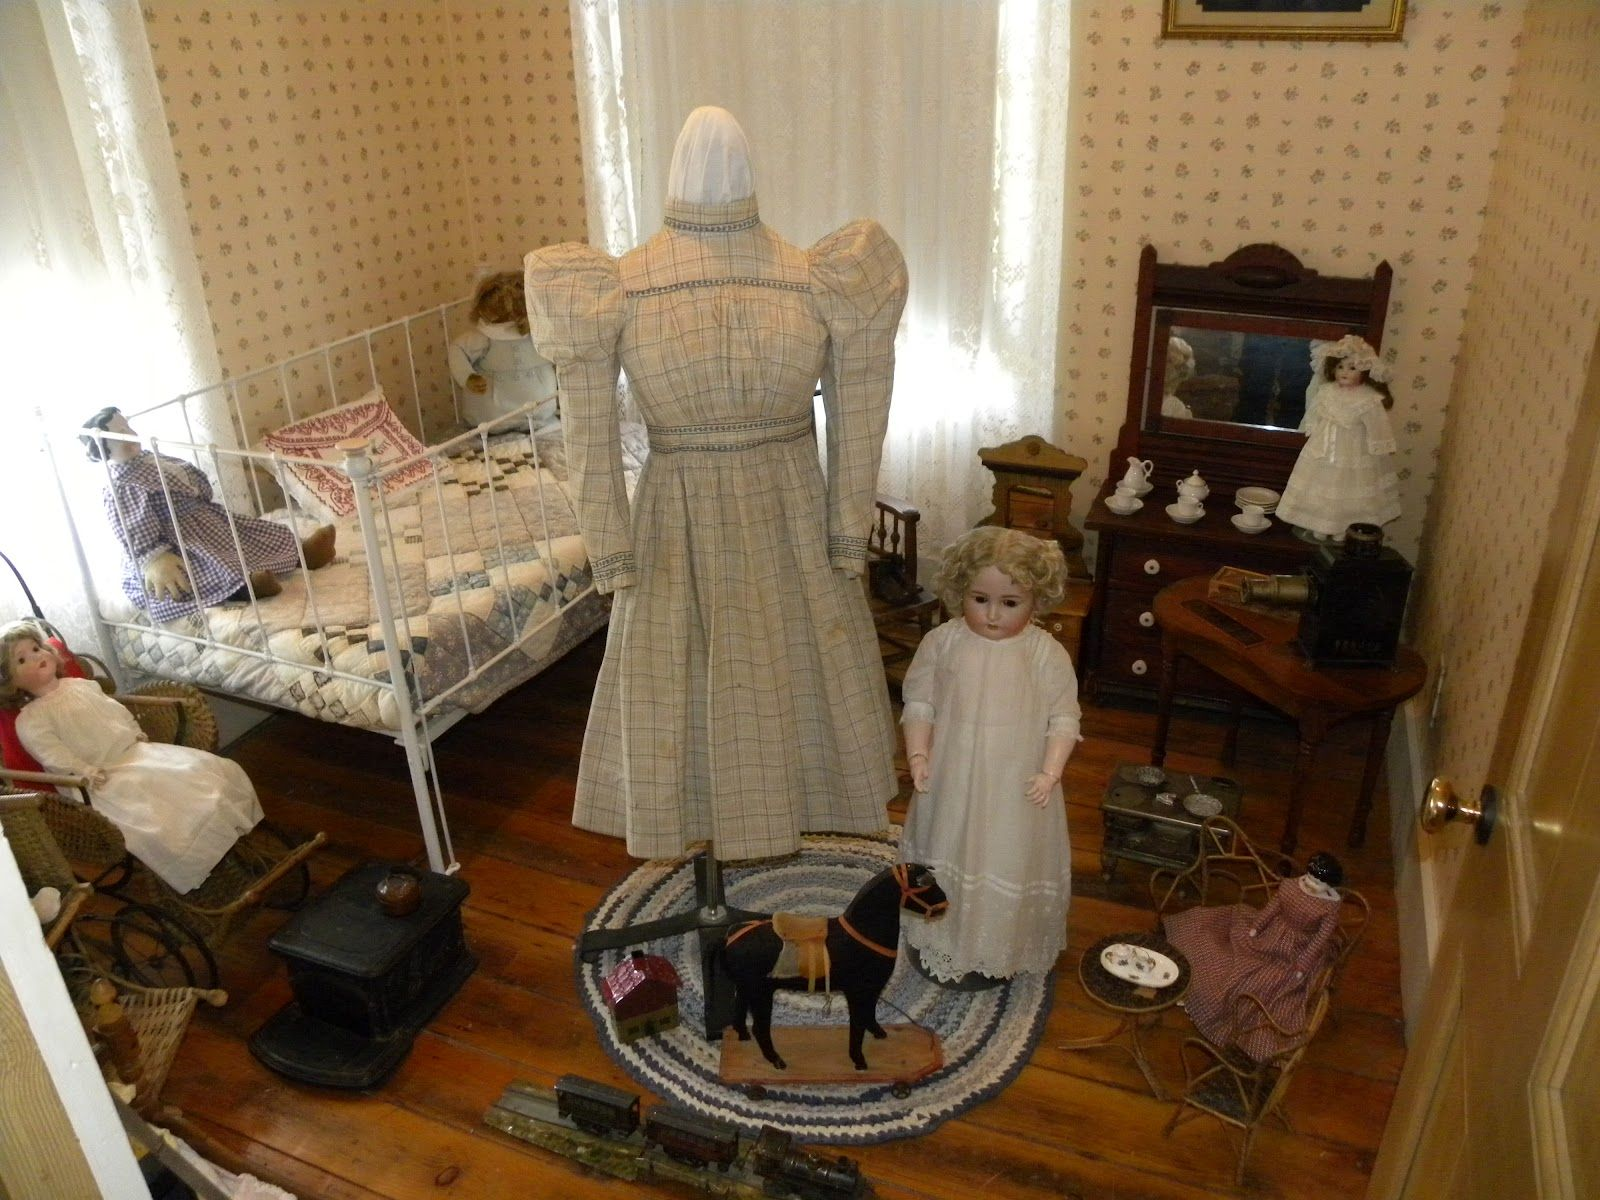 victorian rooms photos | typical Victorian child's room. The concept of childhood was